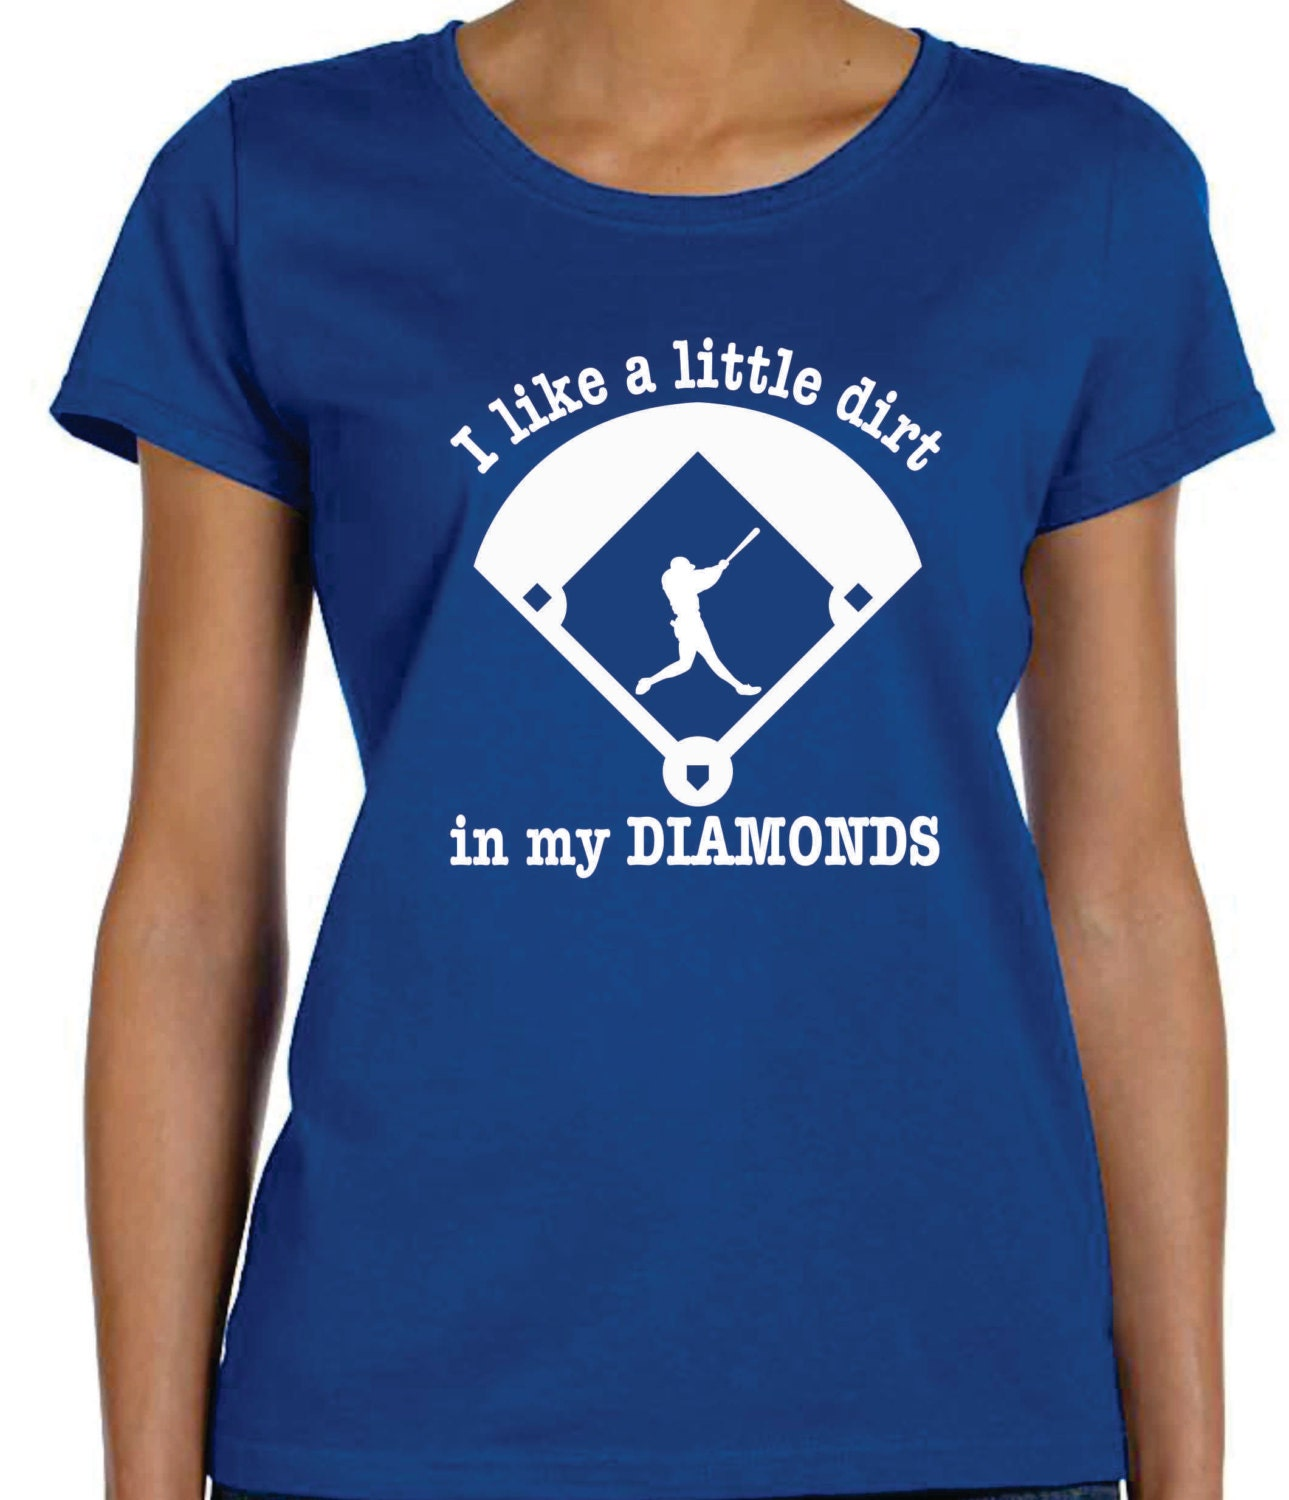 Baseball T Shirt Designs Ideas fearless baseball team shirt t shirt design Baseball Mom T Shirt Ideas Dirt In My Diamonds Baseball Shirts Custom